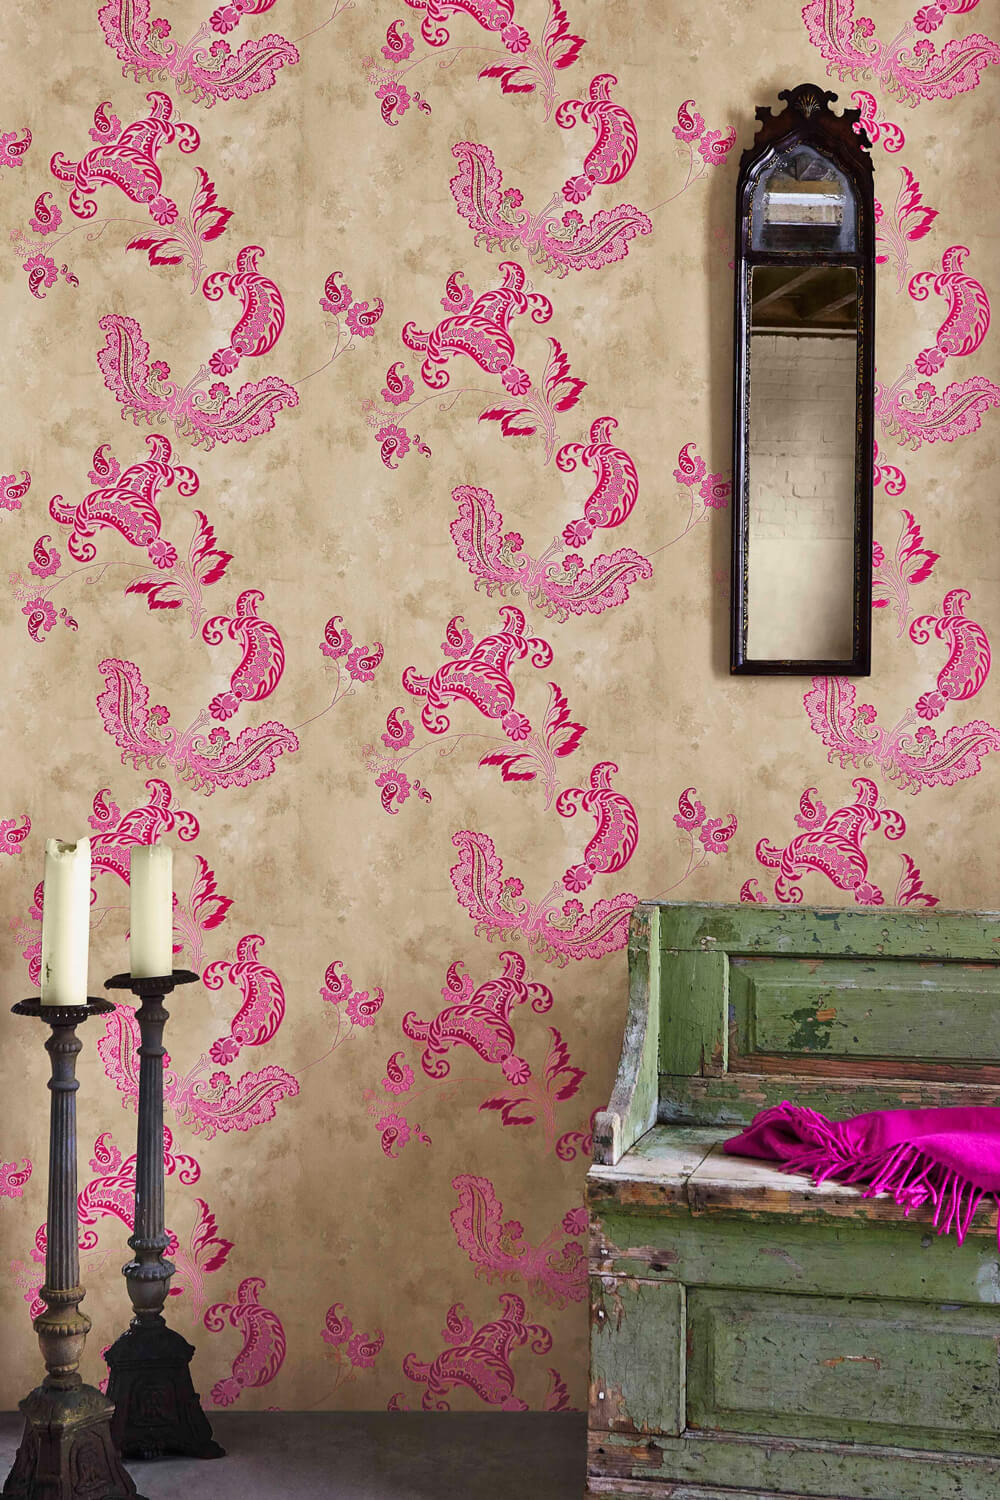 Paisley - Hot Pink On Tea Stain Wallcovering